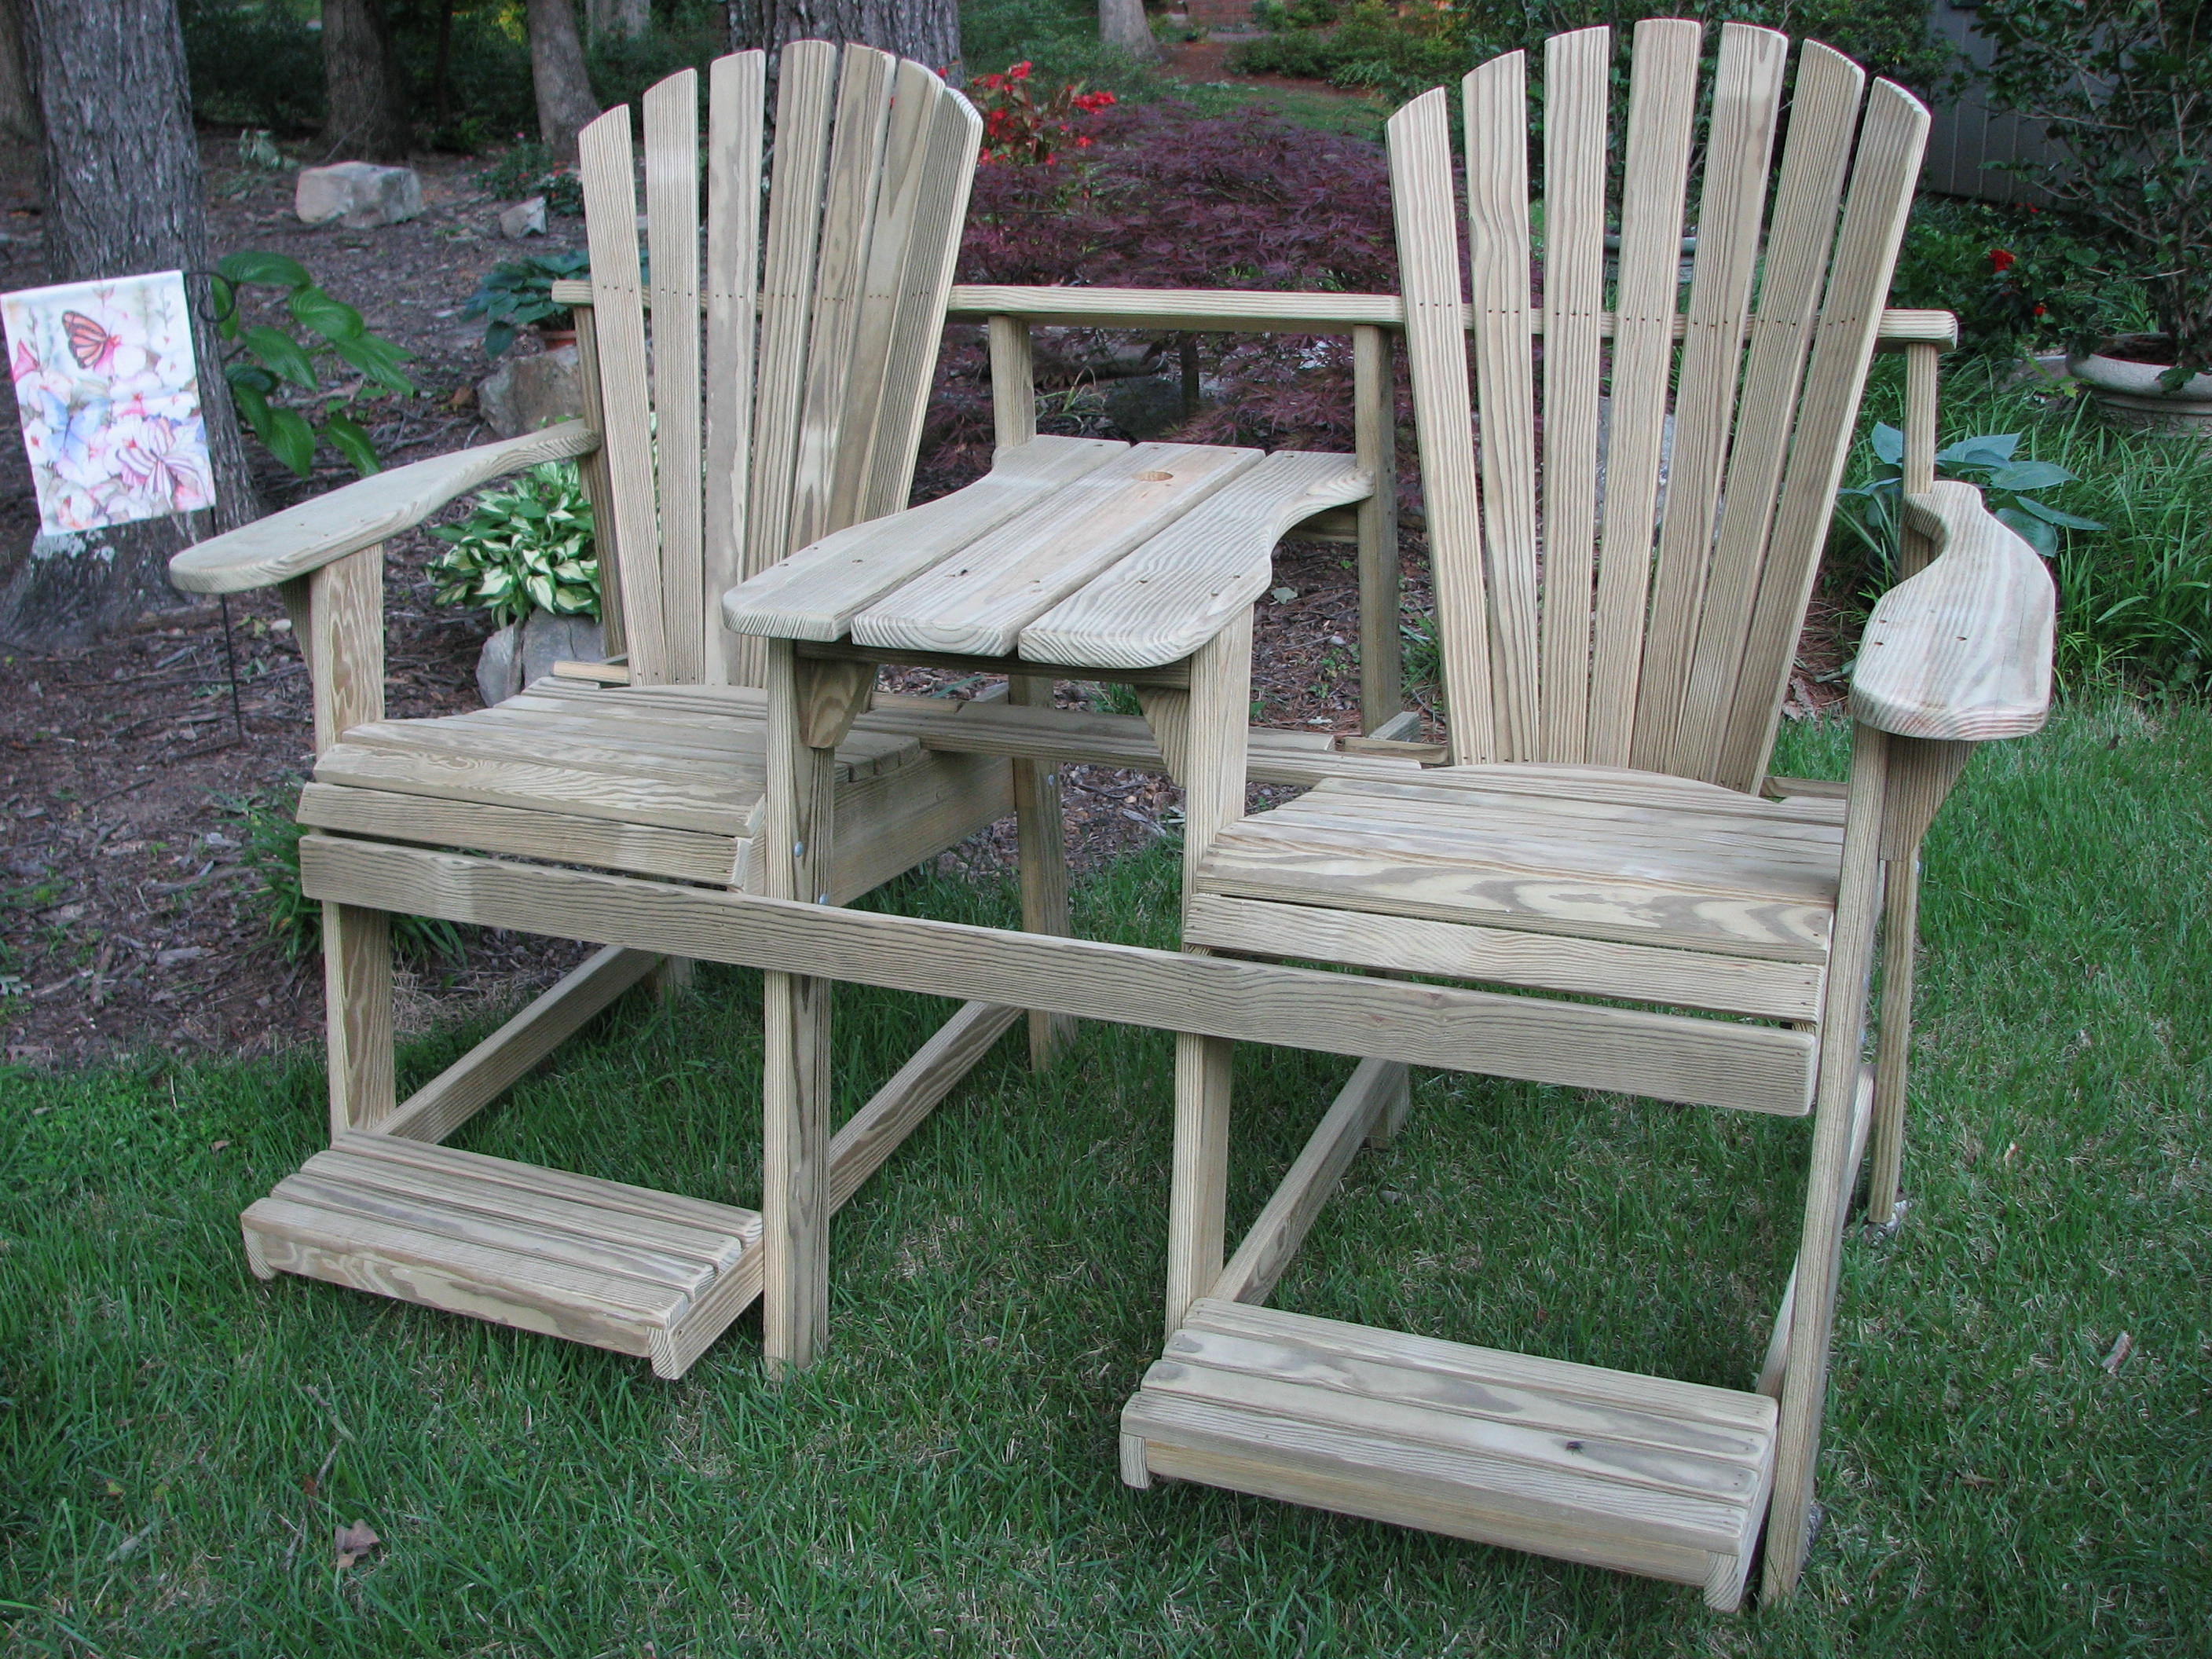 Wood Patterns Outdoor Furniture 15 Awesome Plans For Diy